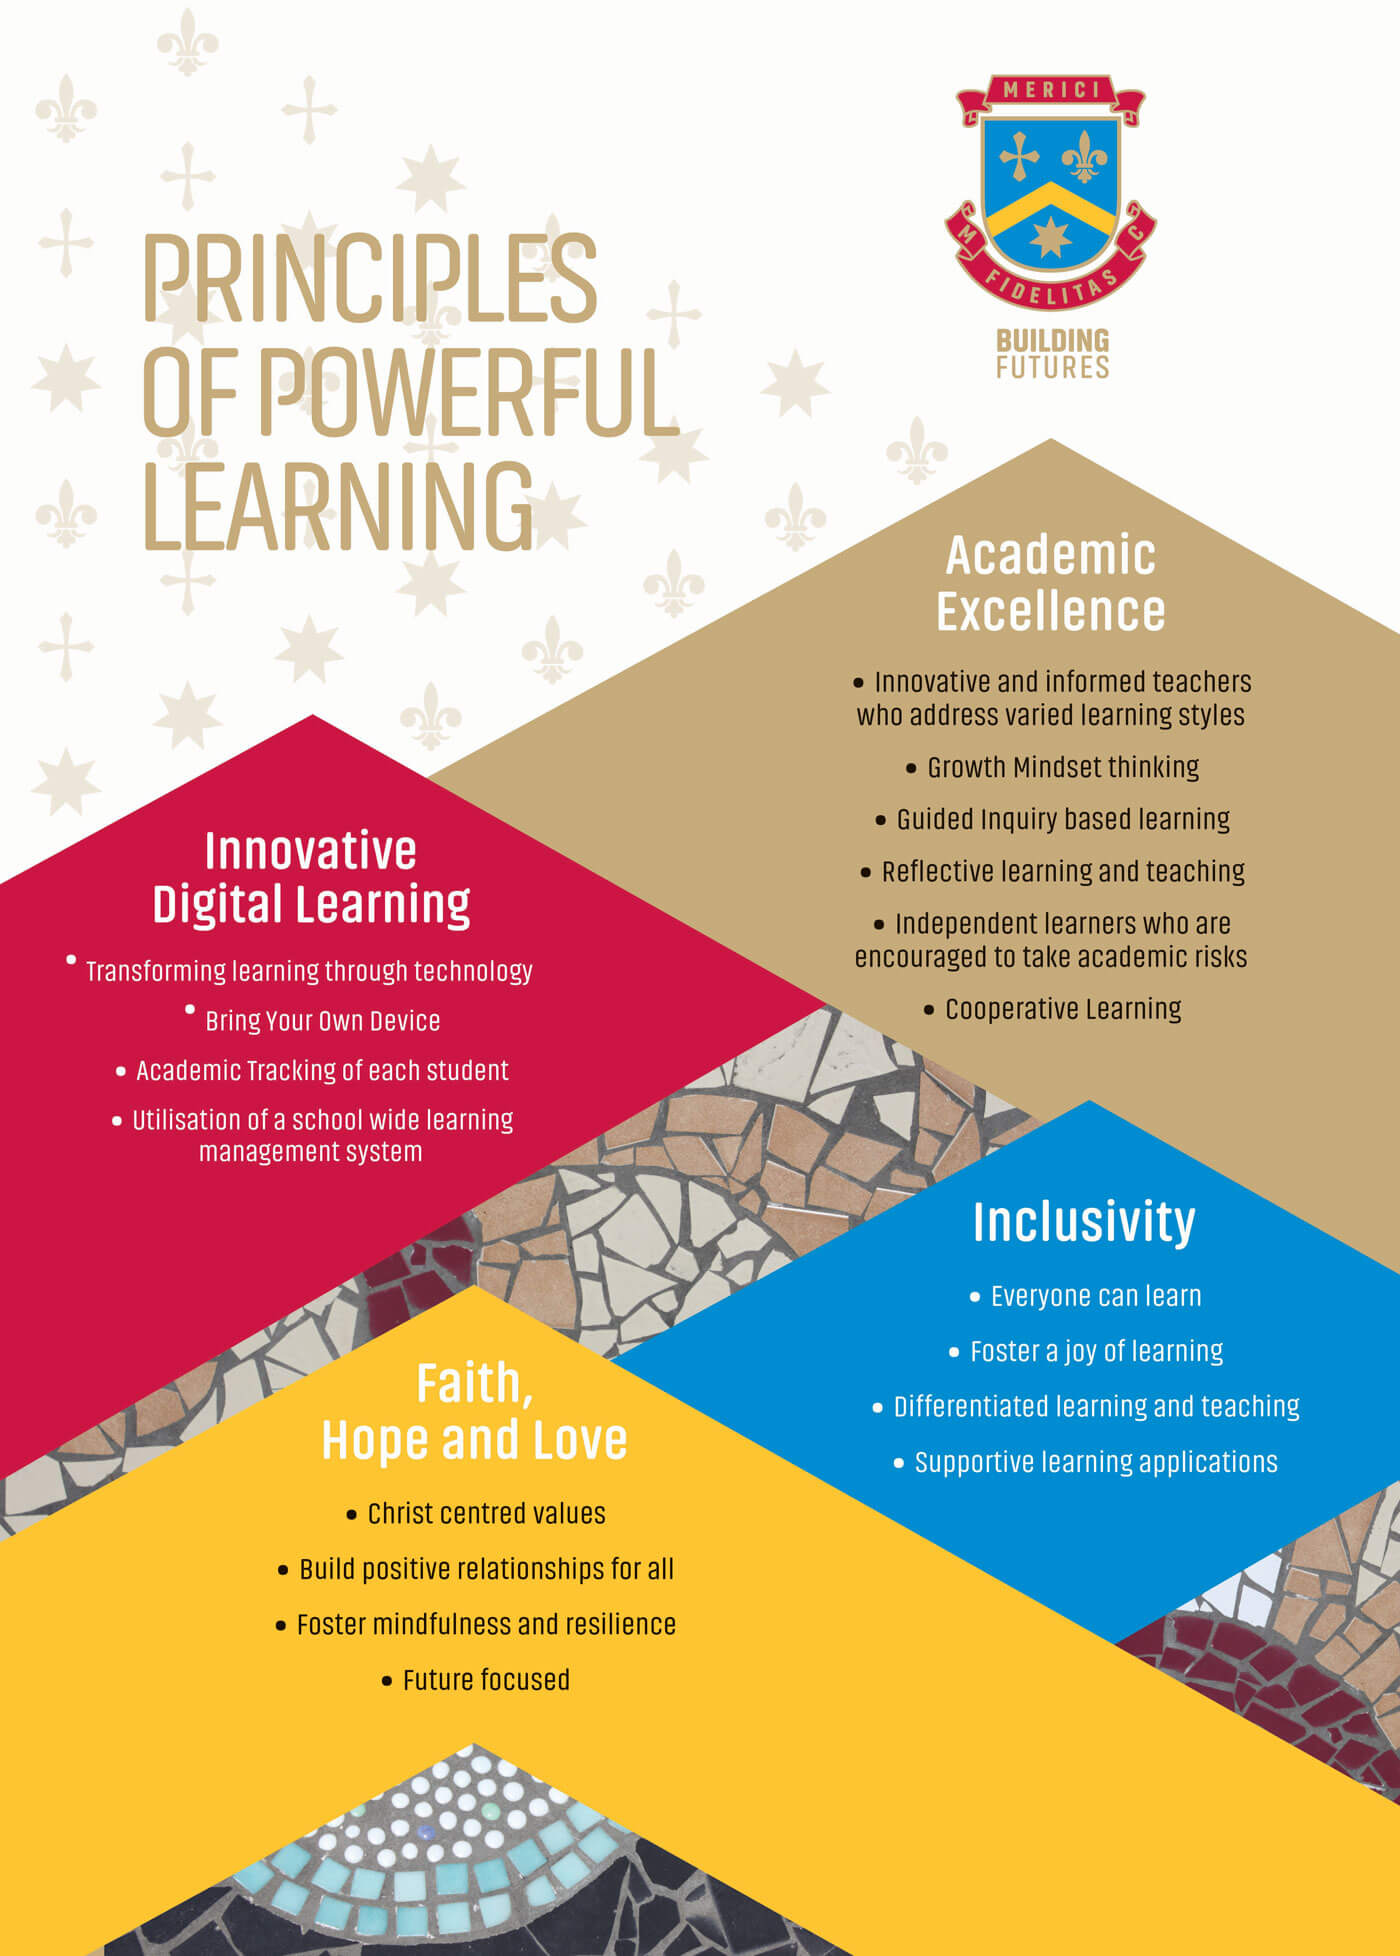 Principles of Powerful Learning Image